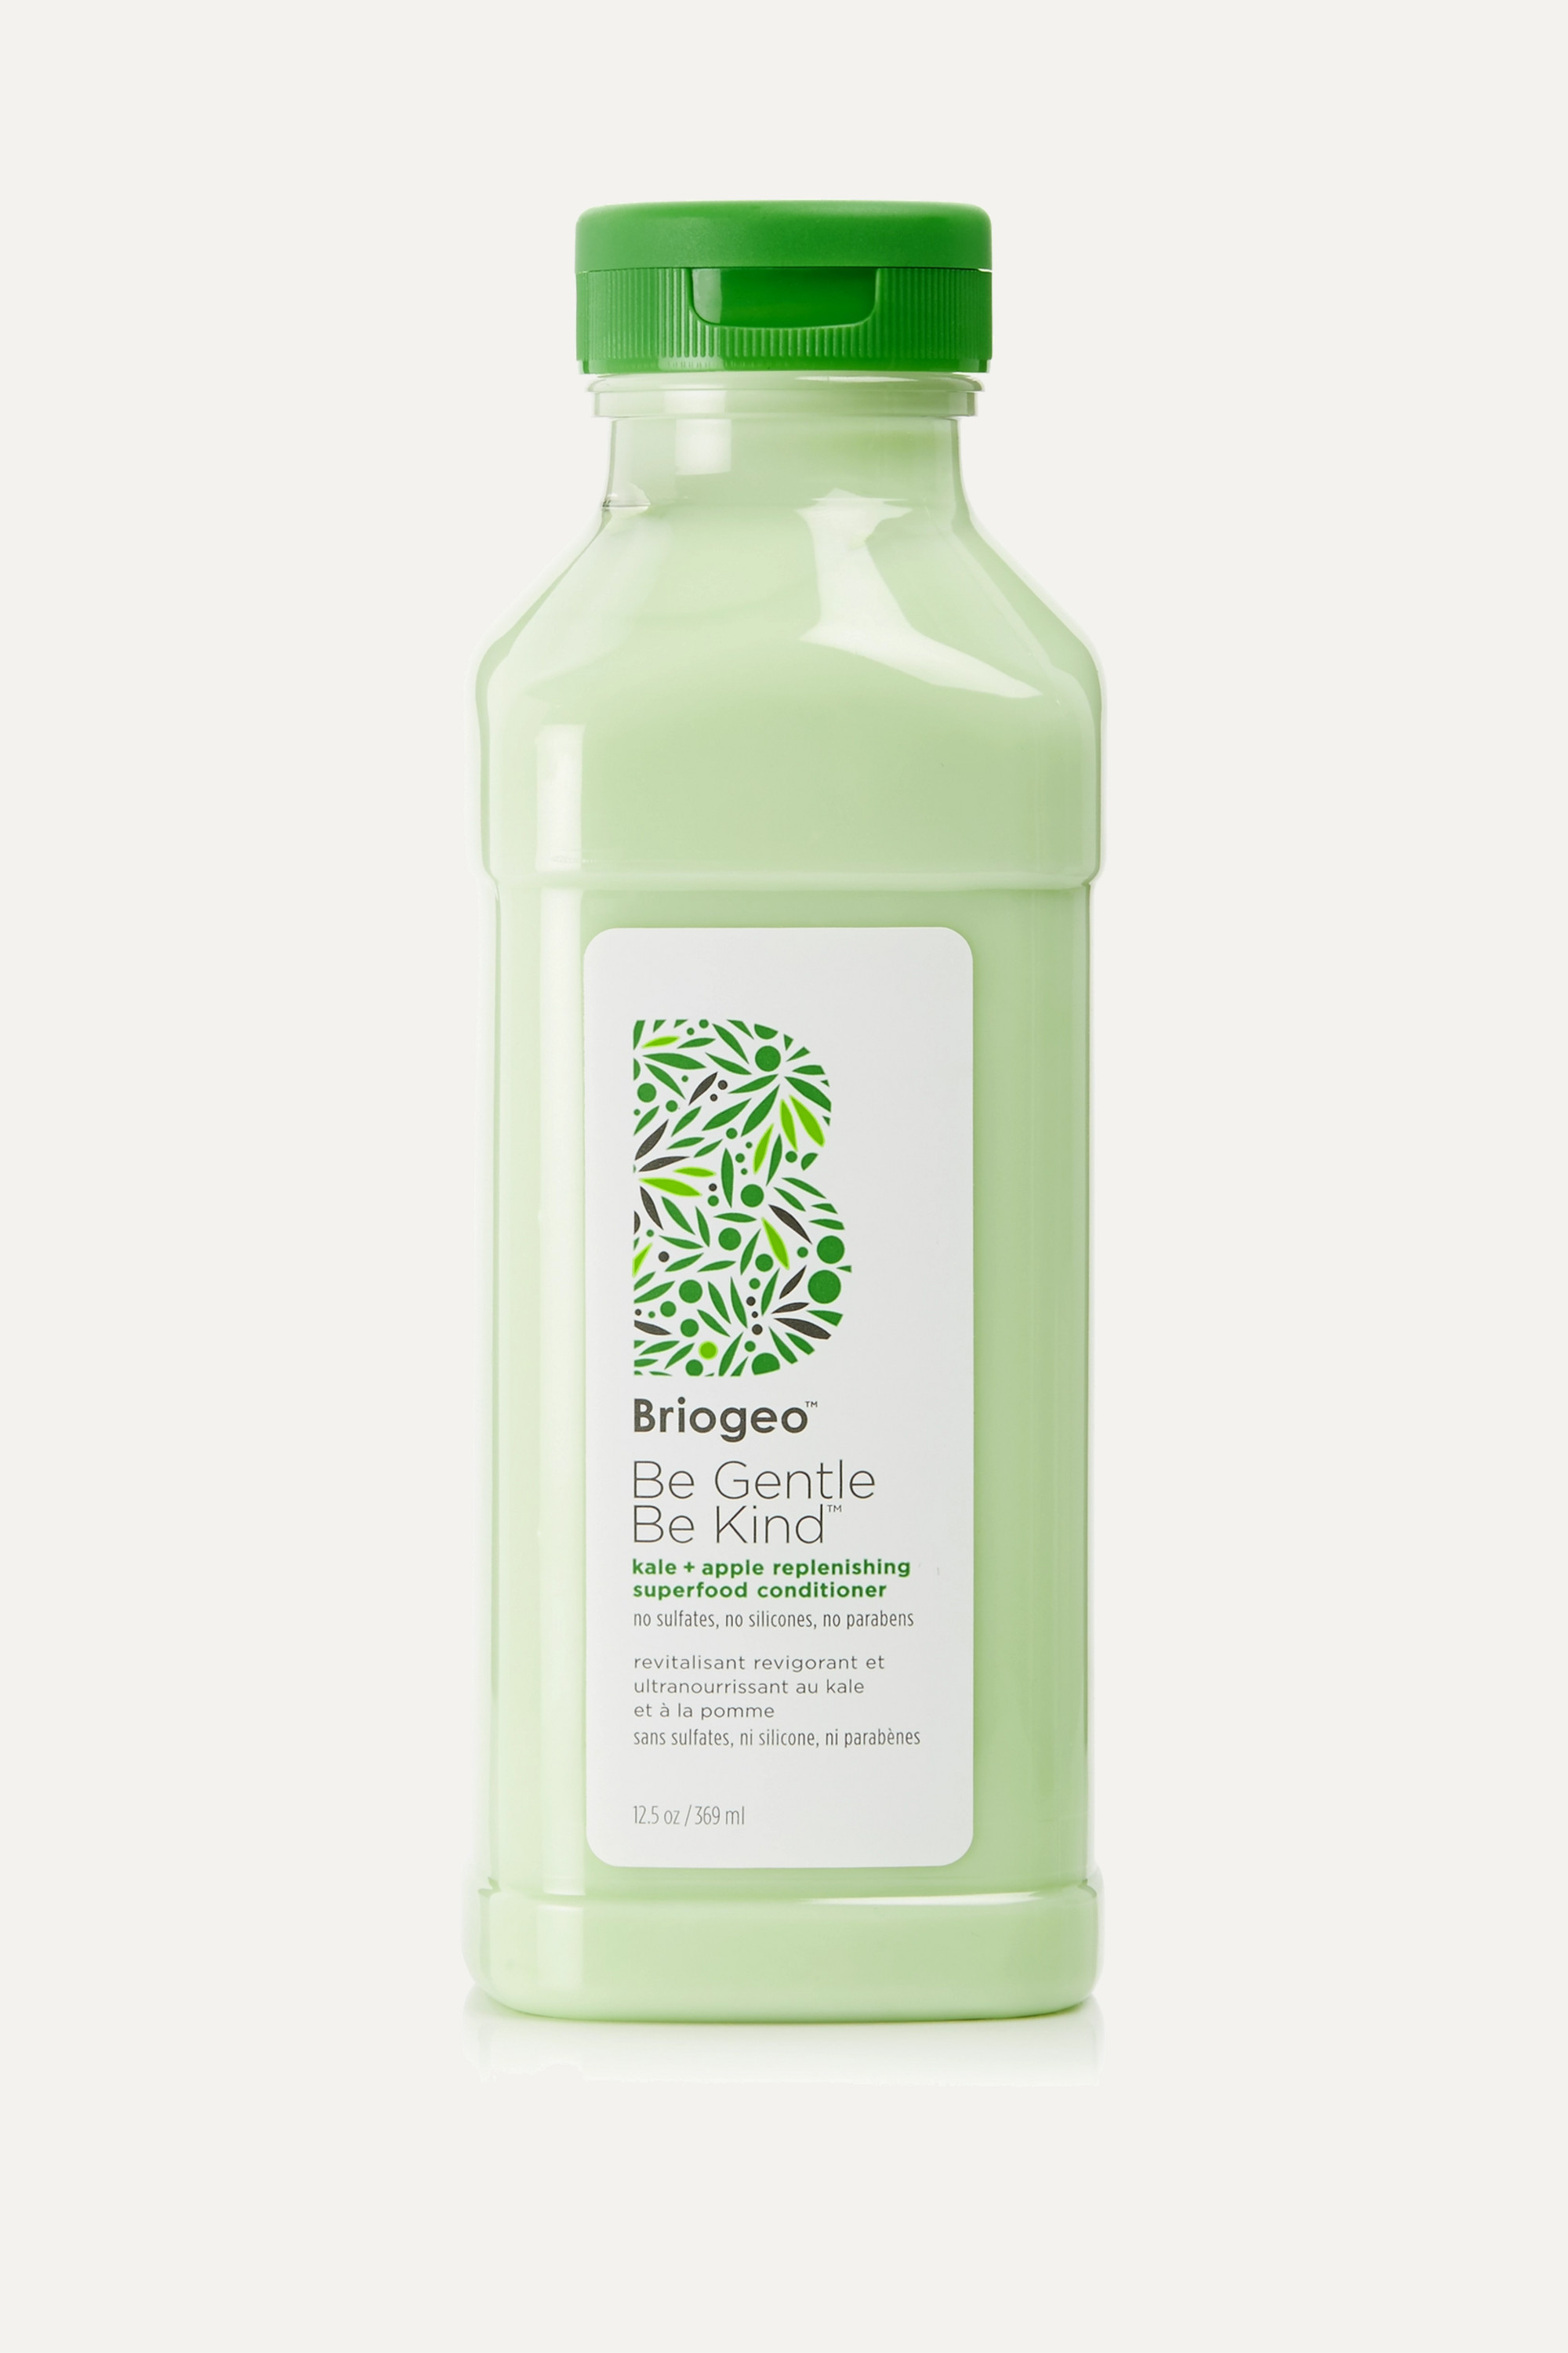 Briogeo Be Gentle, Be Kind Kale + Apple Replenishing Superfood Conditioner, 369ml